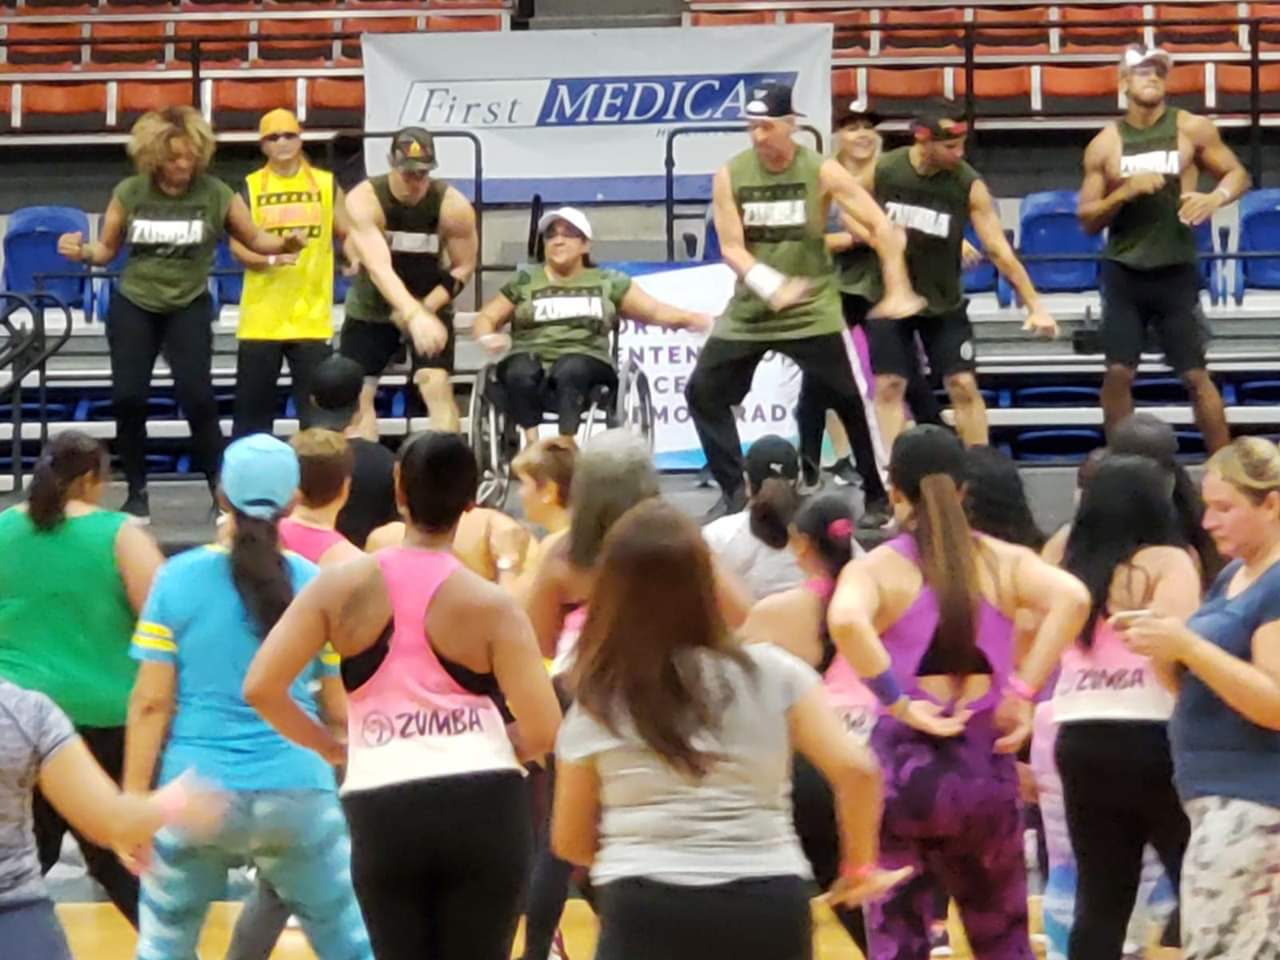 Wheelchair users can participate in Zumba